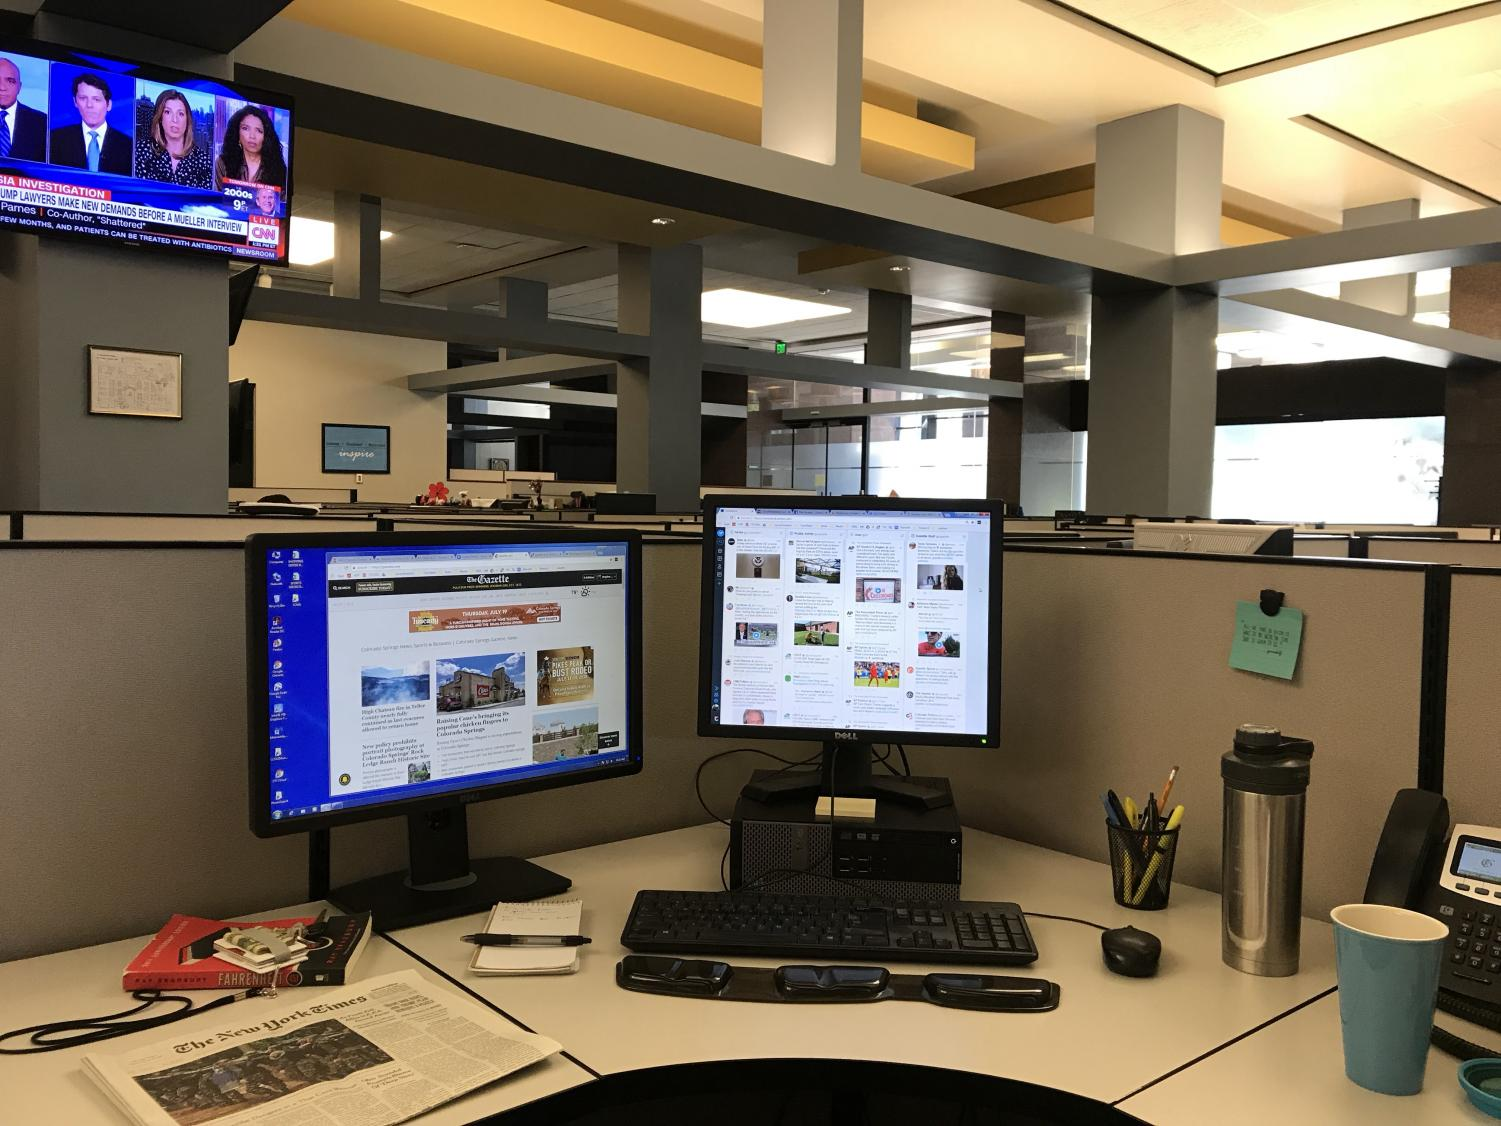 A look at my work station at The Gazette. Having two monitors is essential in order to keep up with the flow of news. So is coffee.